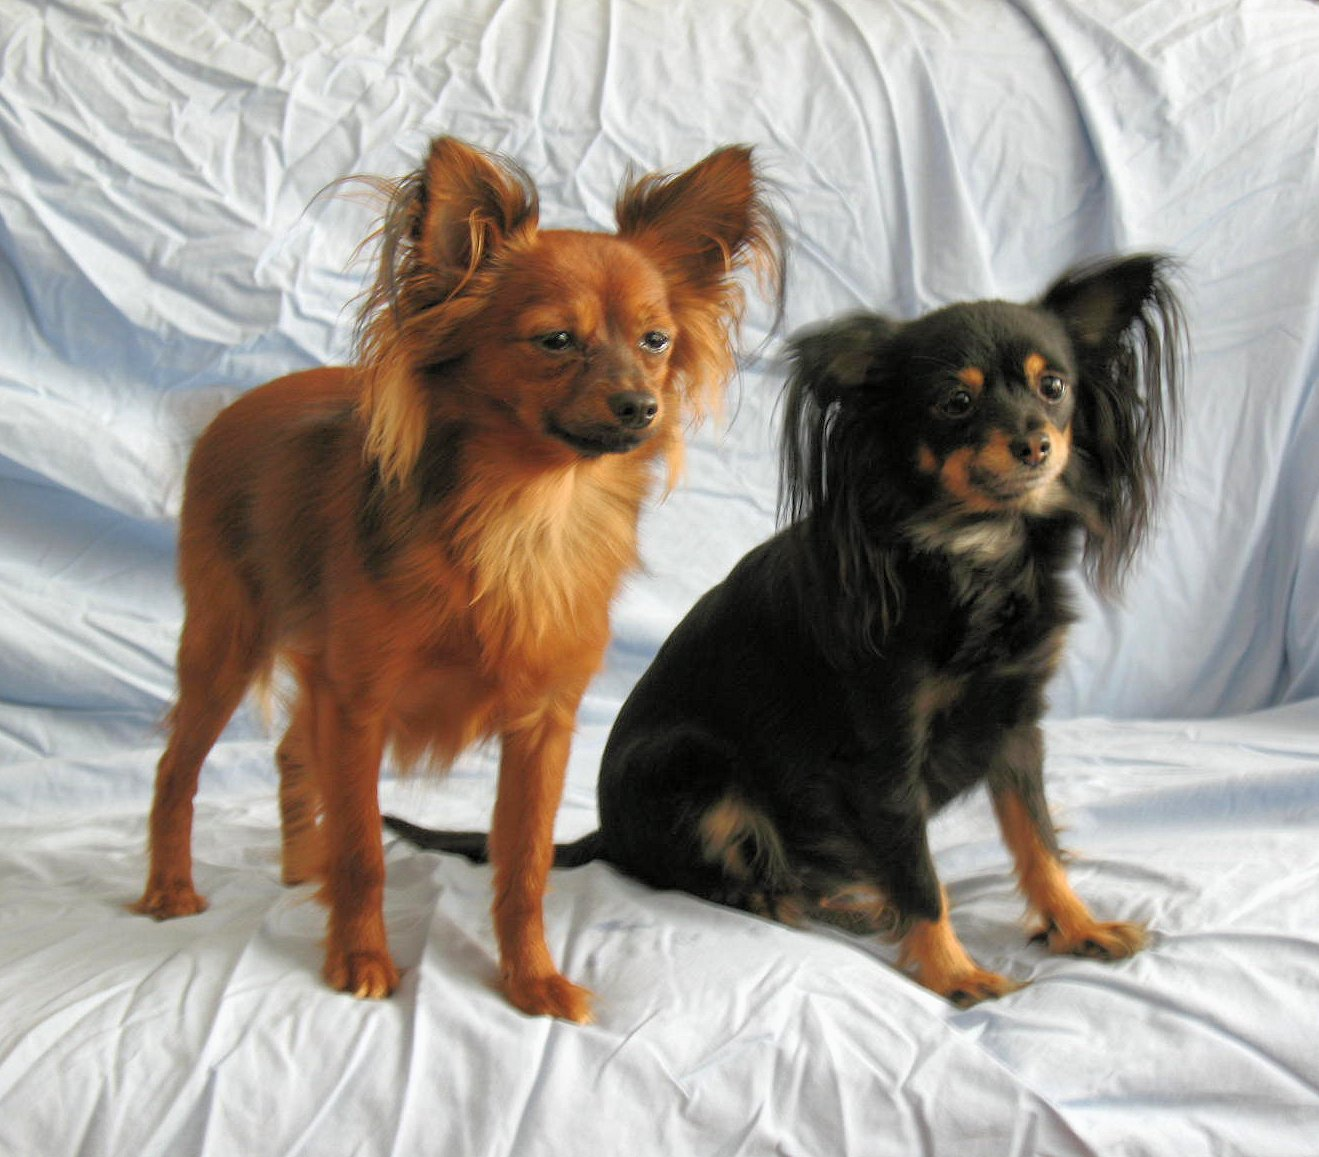 Russian Toy Dog: Russian Puppies Breed